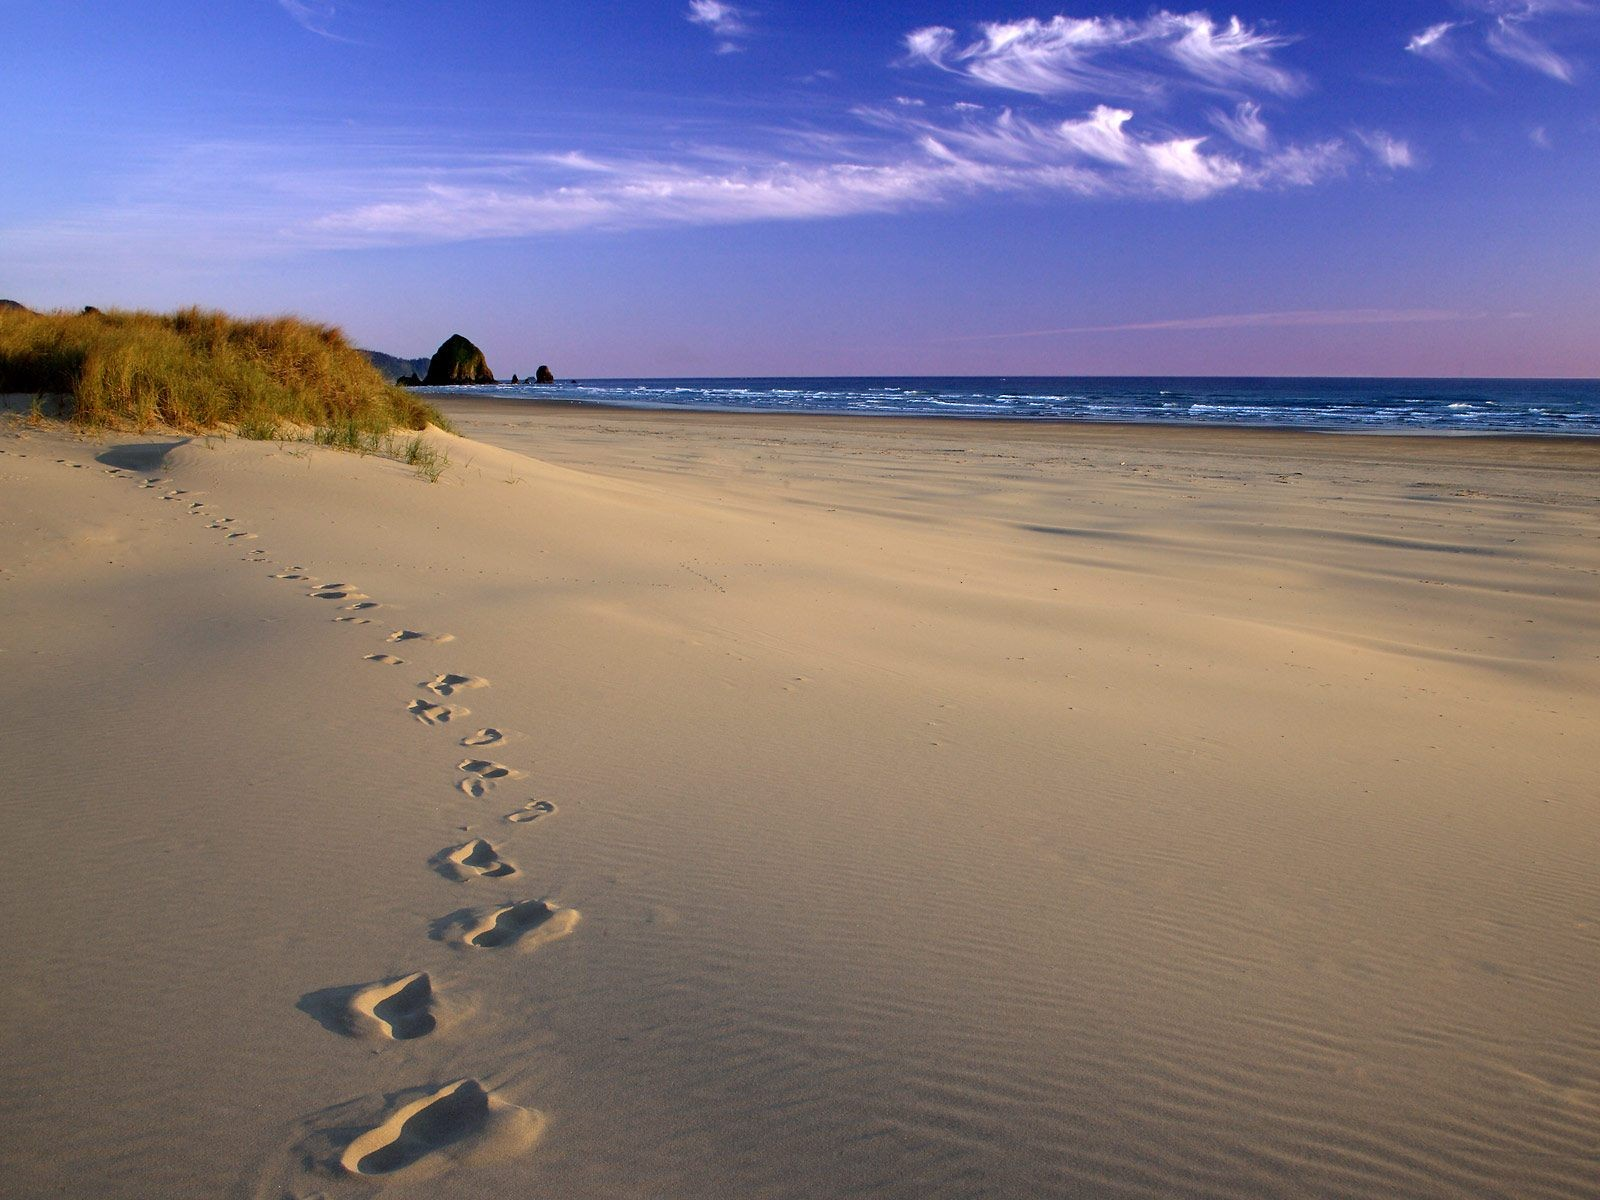 http://3.bp.blogspot.com/-c5p4tDzymNI/Tbb6hsv3C4I/AAAAAAAAADU/YoHtk0VpOpU/s1600/footsteps_on_beach_desktop_wallpaper_84810.jpg